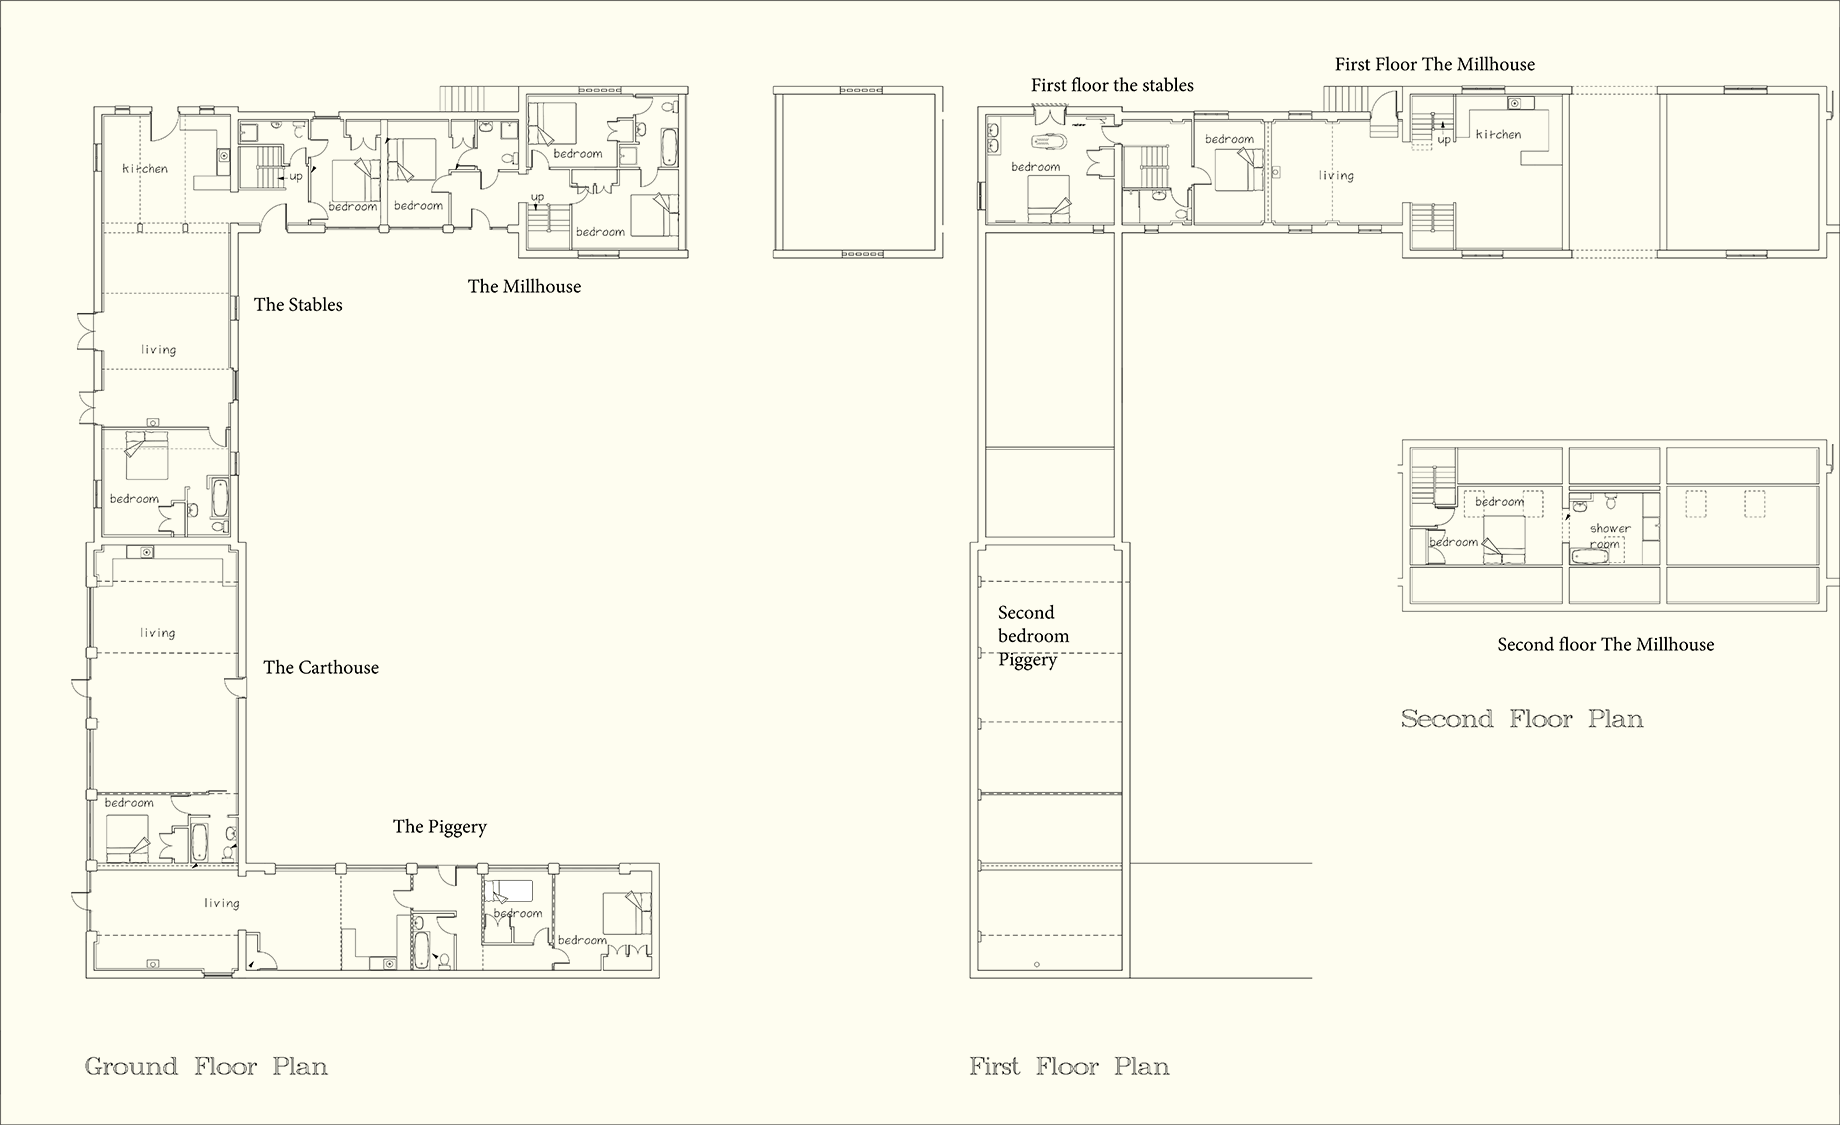 The Millhouse Floorplan